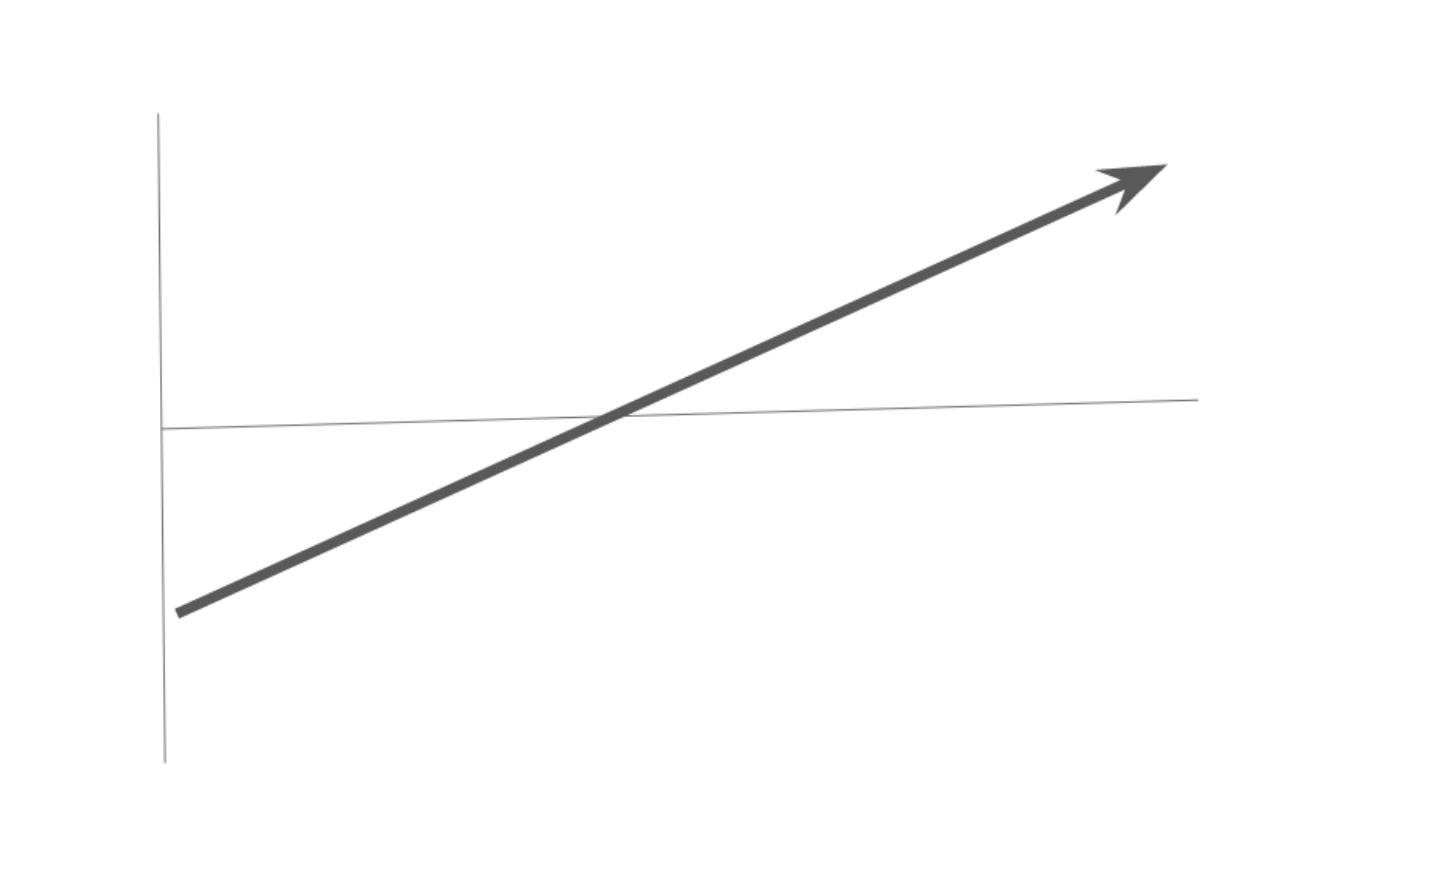 a line rising slowly over an horizontal axis